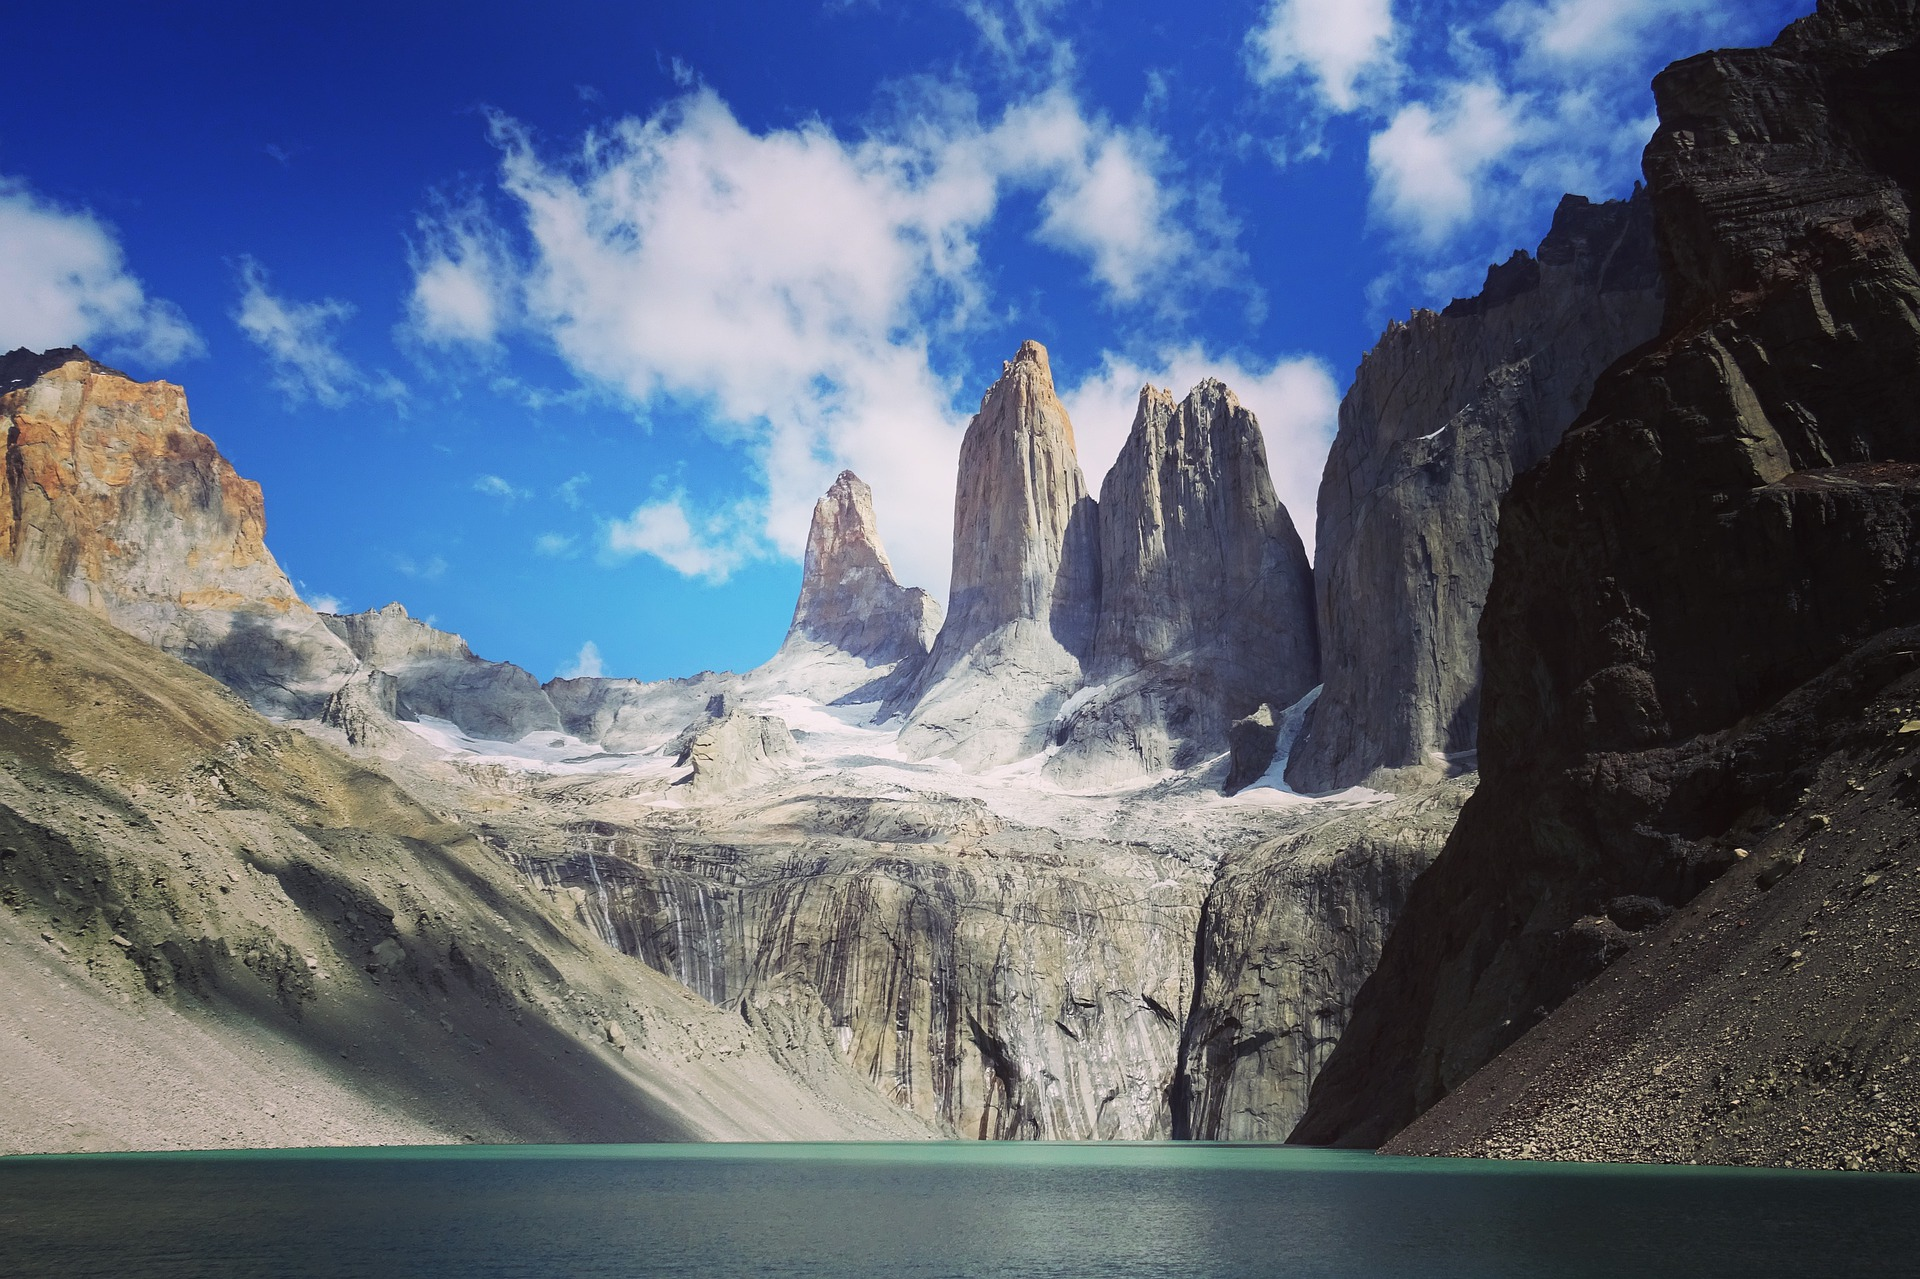 Wonders of Patagonia | Torres del Paine National Park, Patagonia, Chile